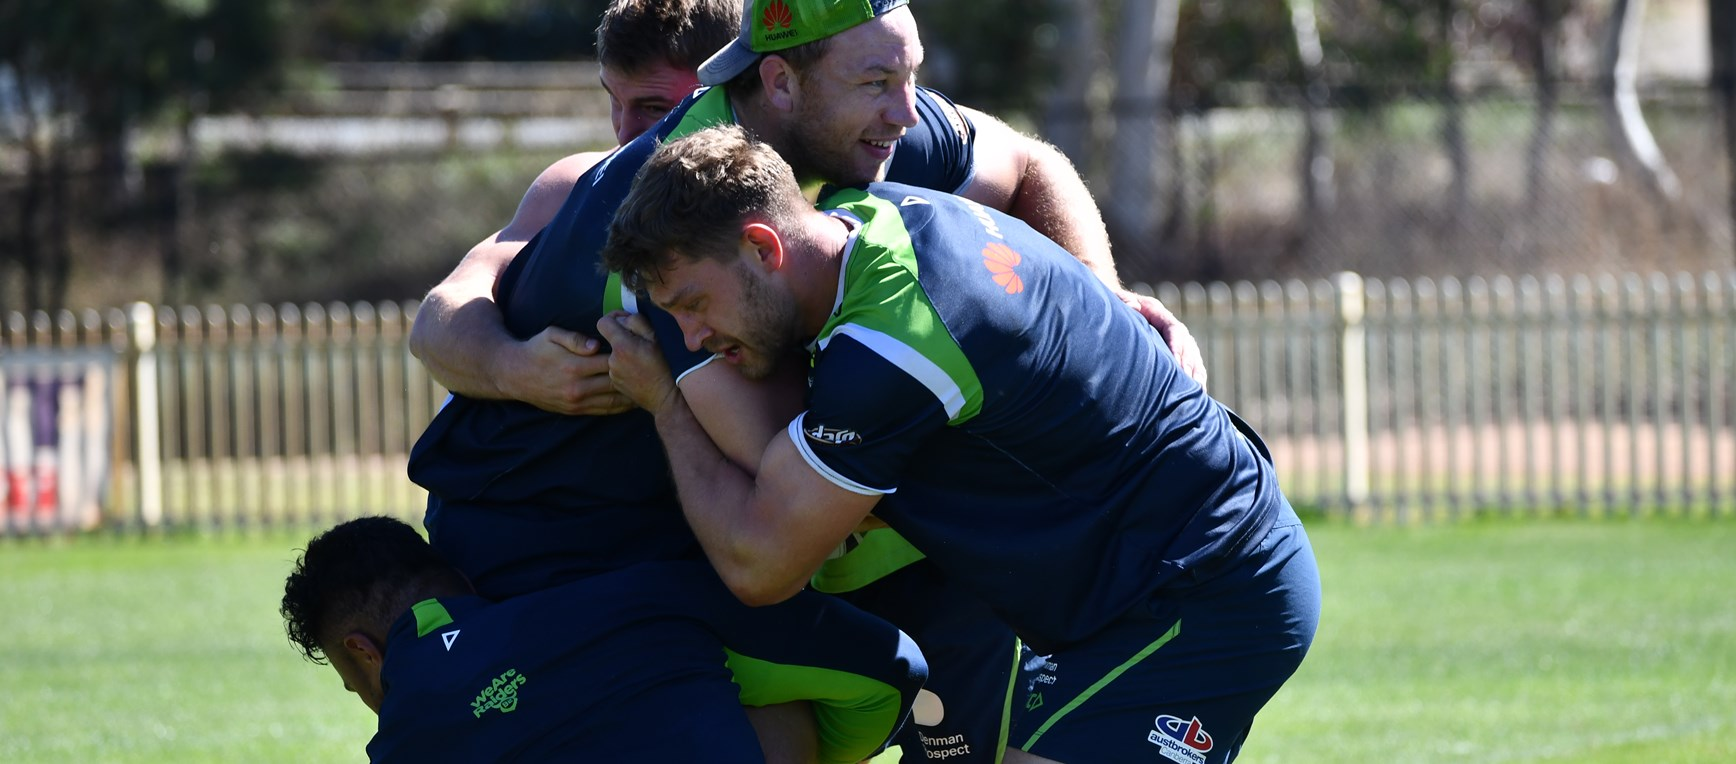 Gallery: Raiders prepare for Manly